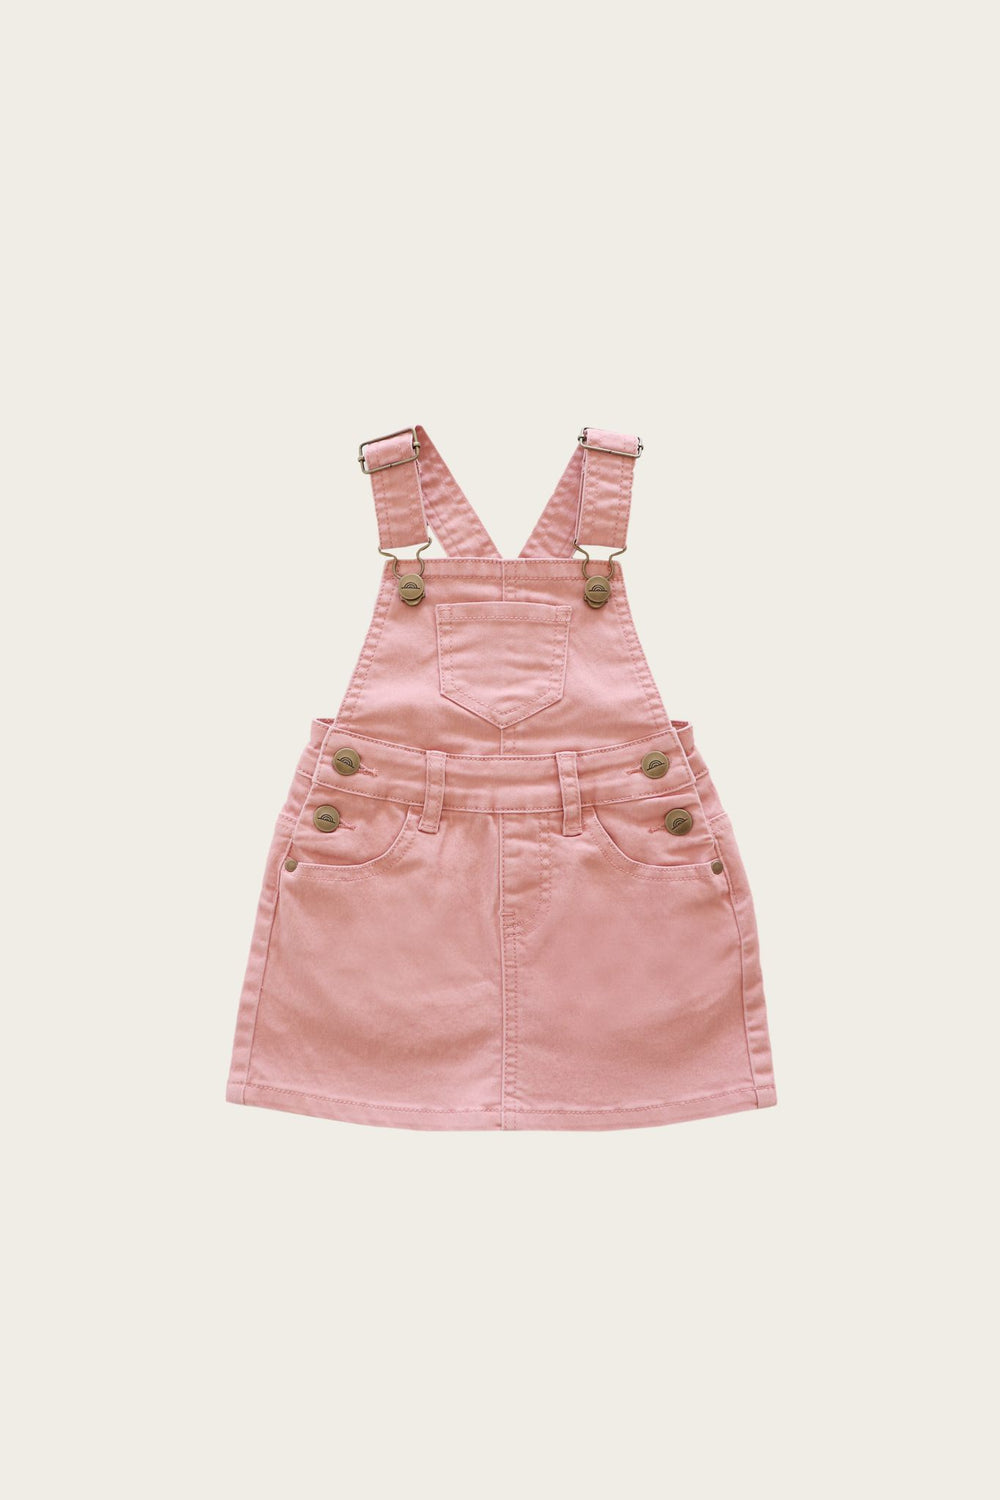 Chloe overall denim dress - Rose